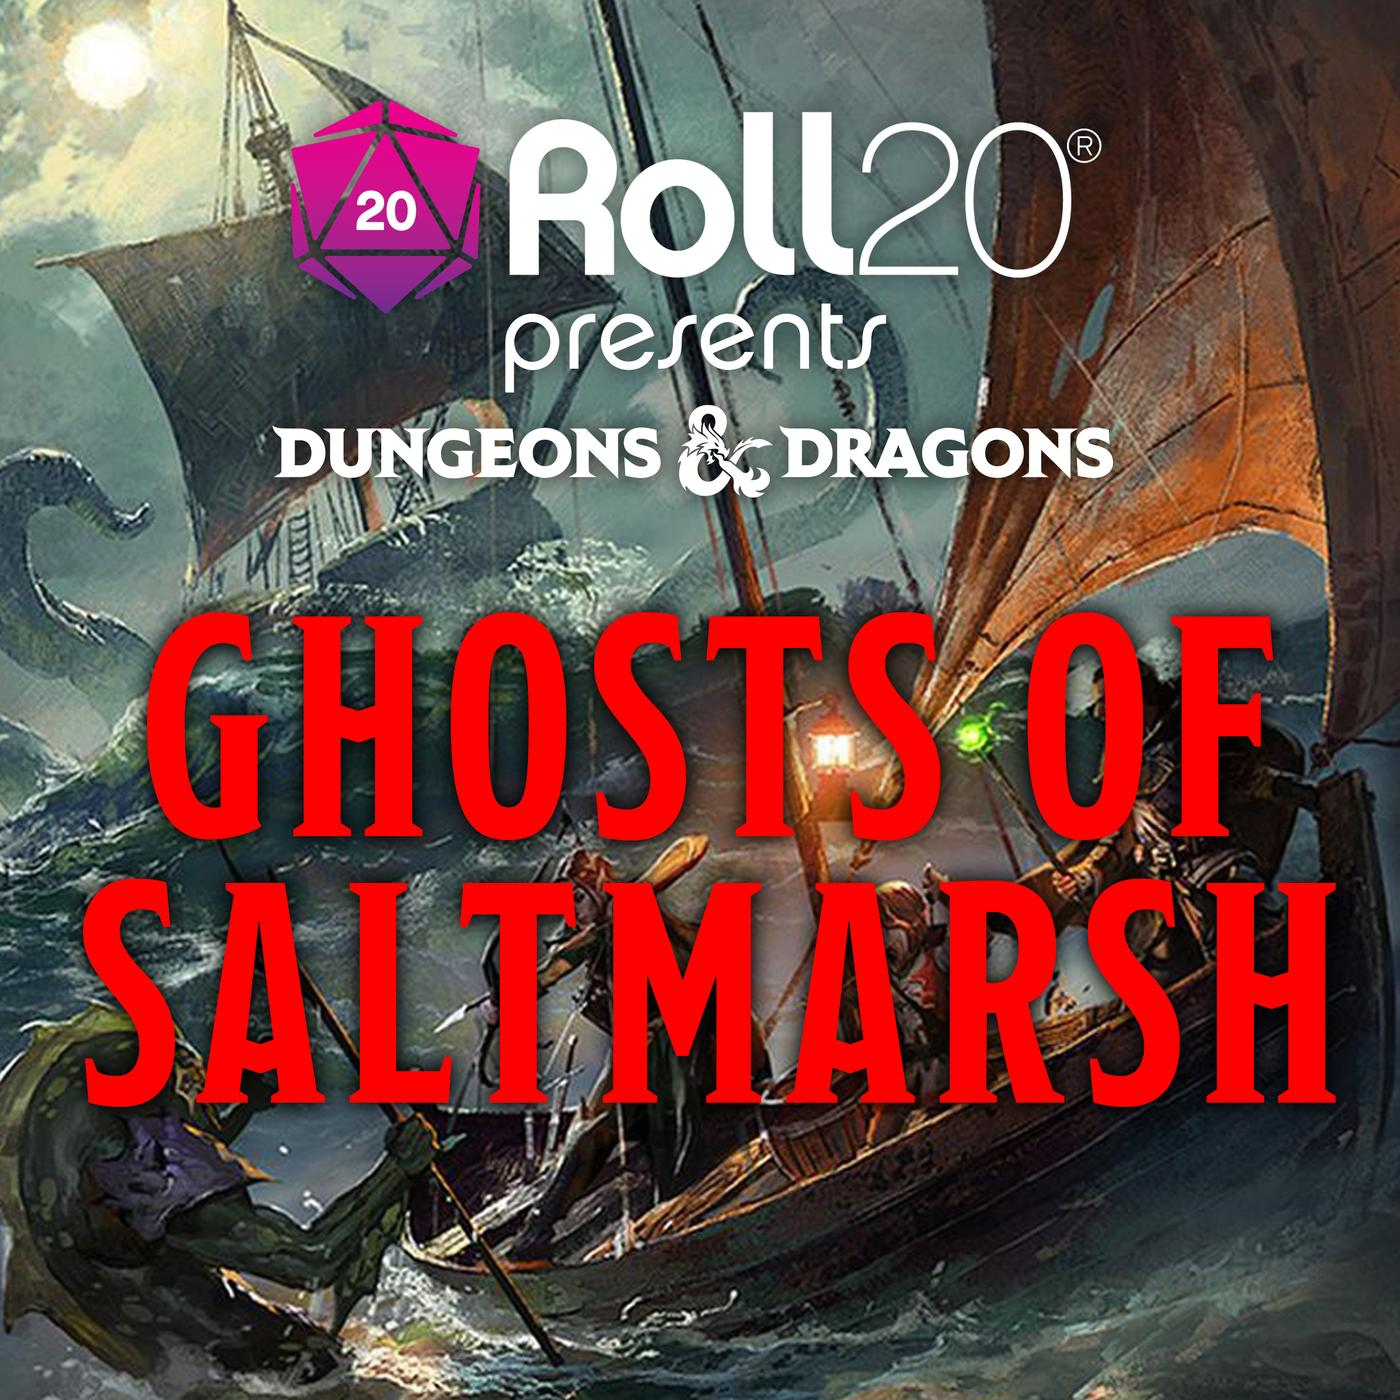 1 6 | Welcome to Saltmarsh - Roll20 Presents: Dungeon of the